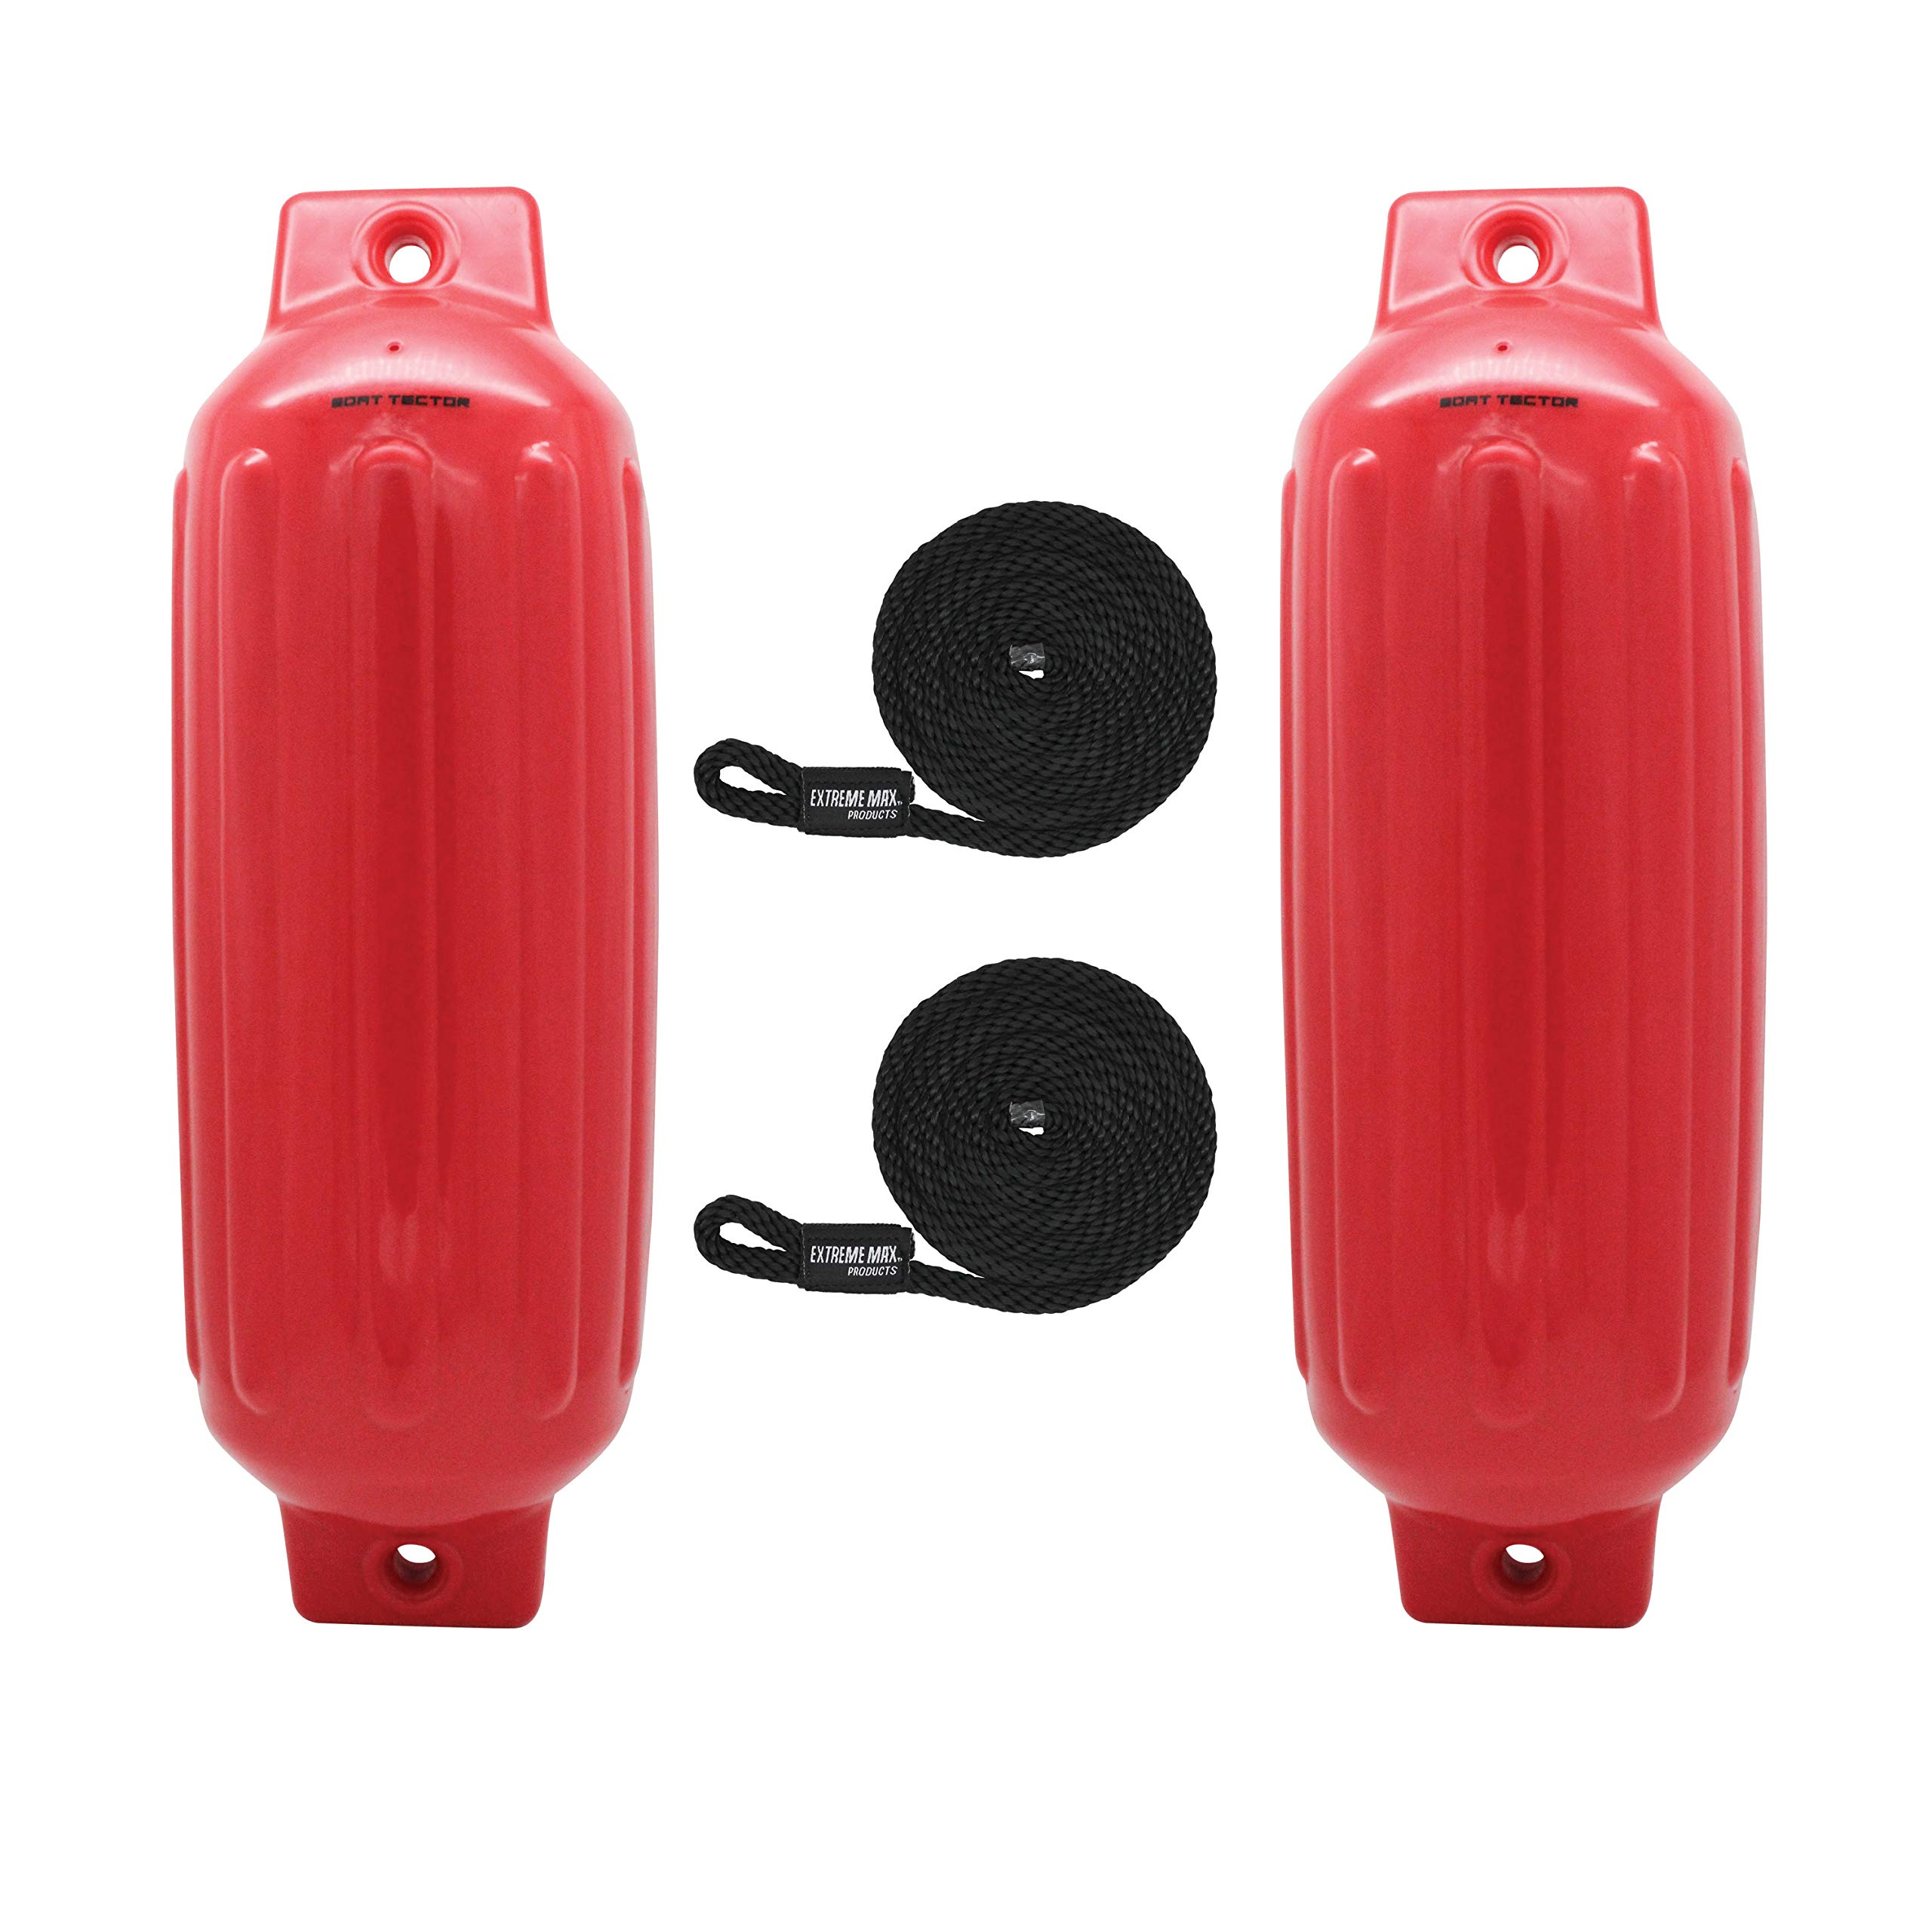 Extreme Max 3006.7563 BoatTector Fender, Red, 8.5'' x 27'' Value 2-Pack